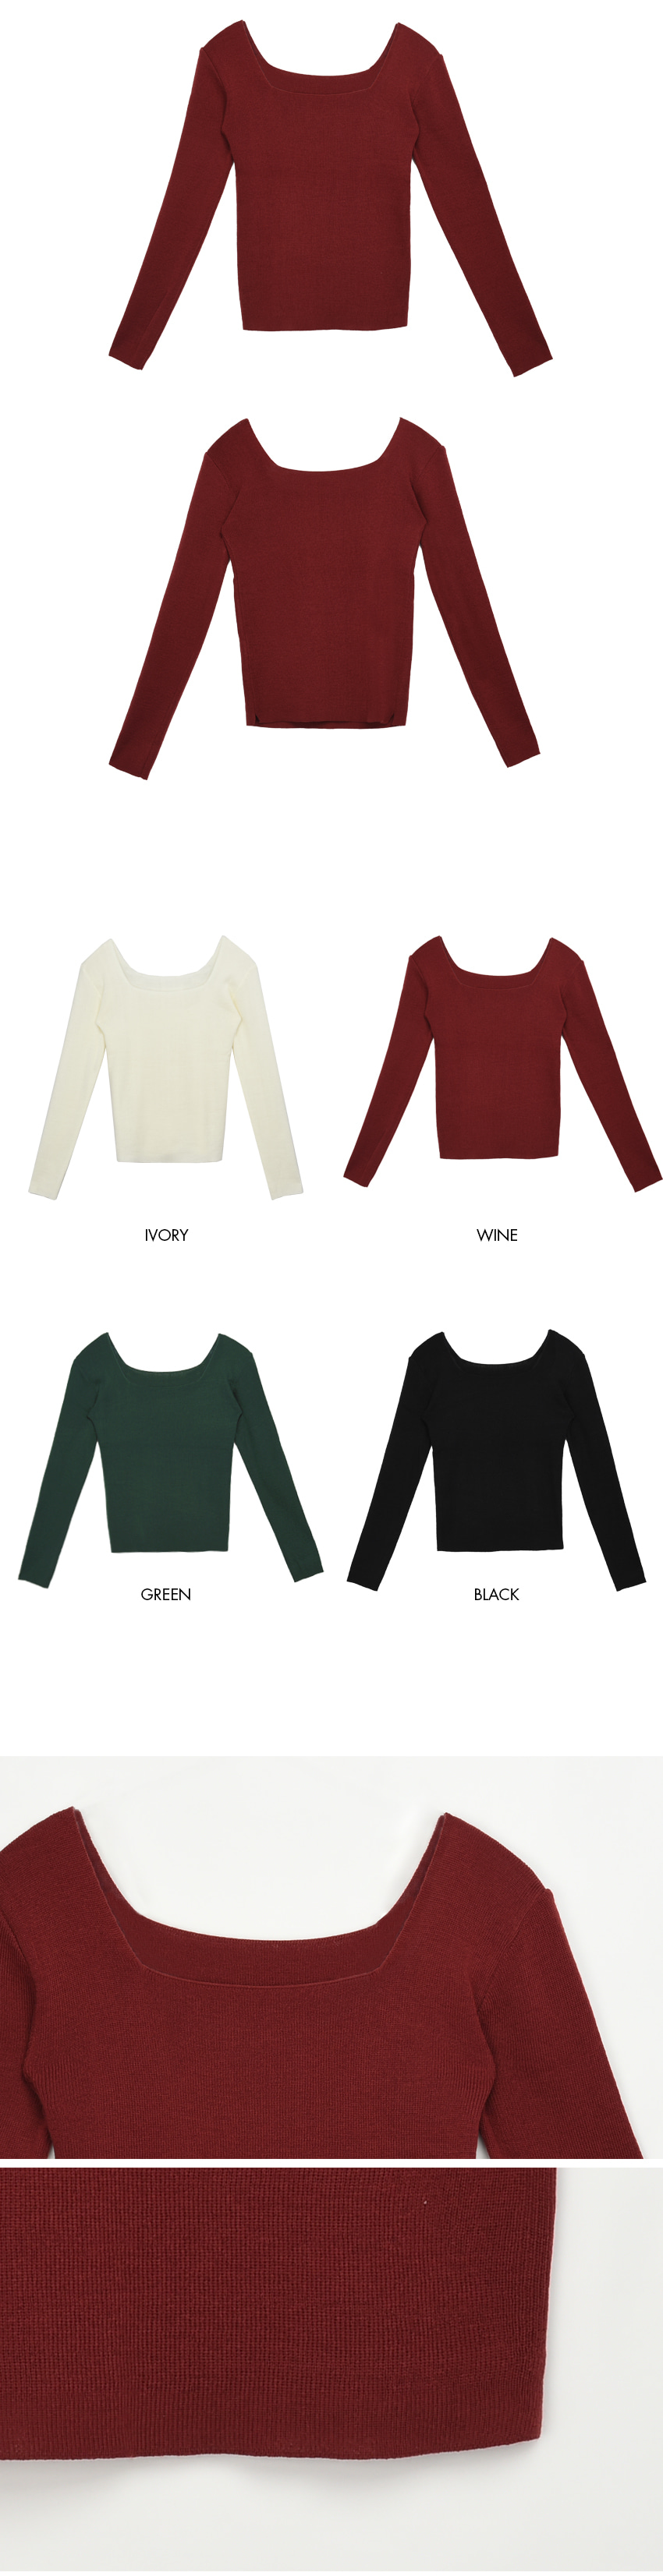 Plain Square Neck Knit Top